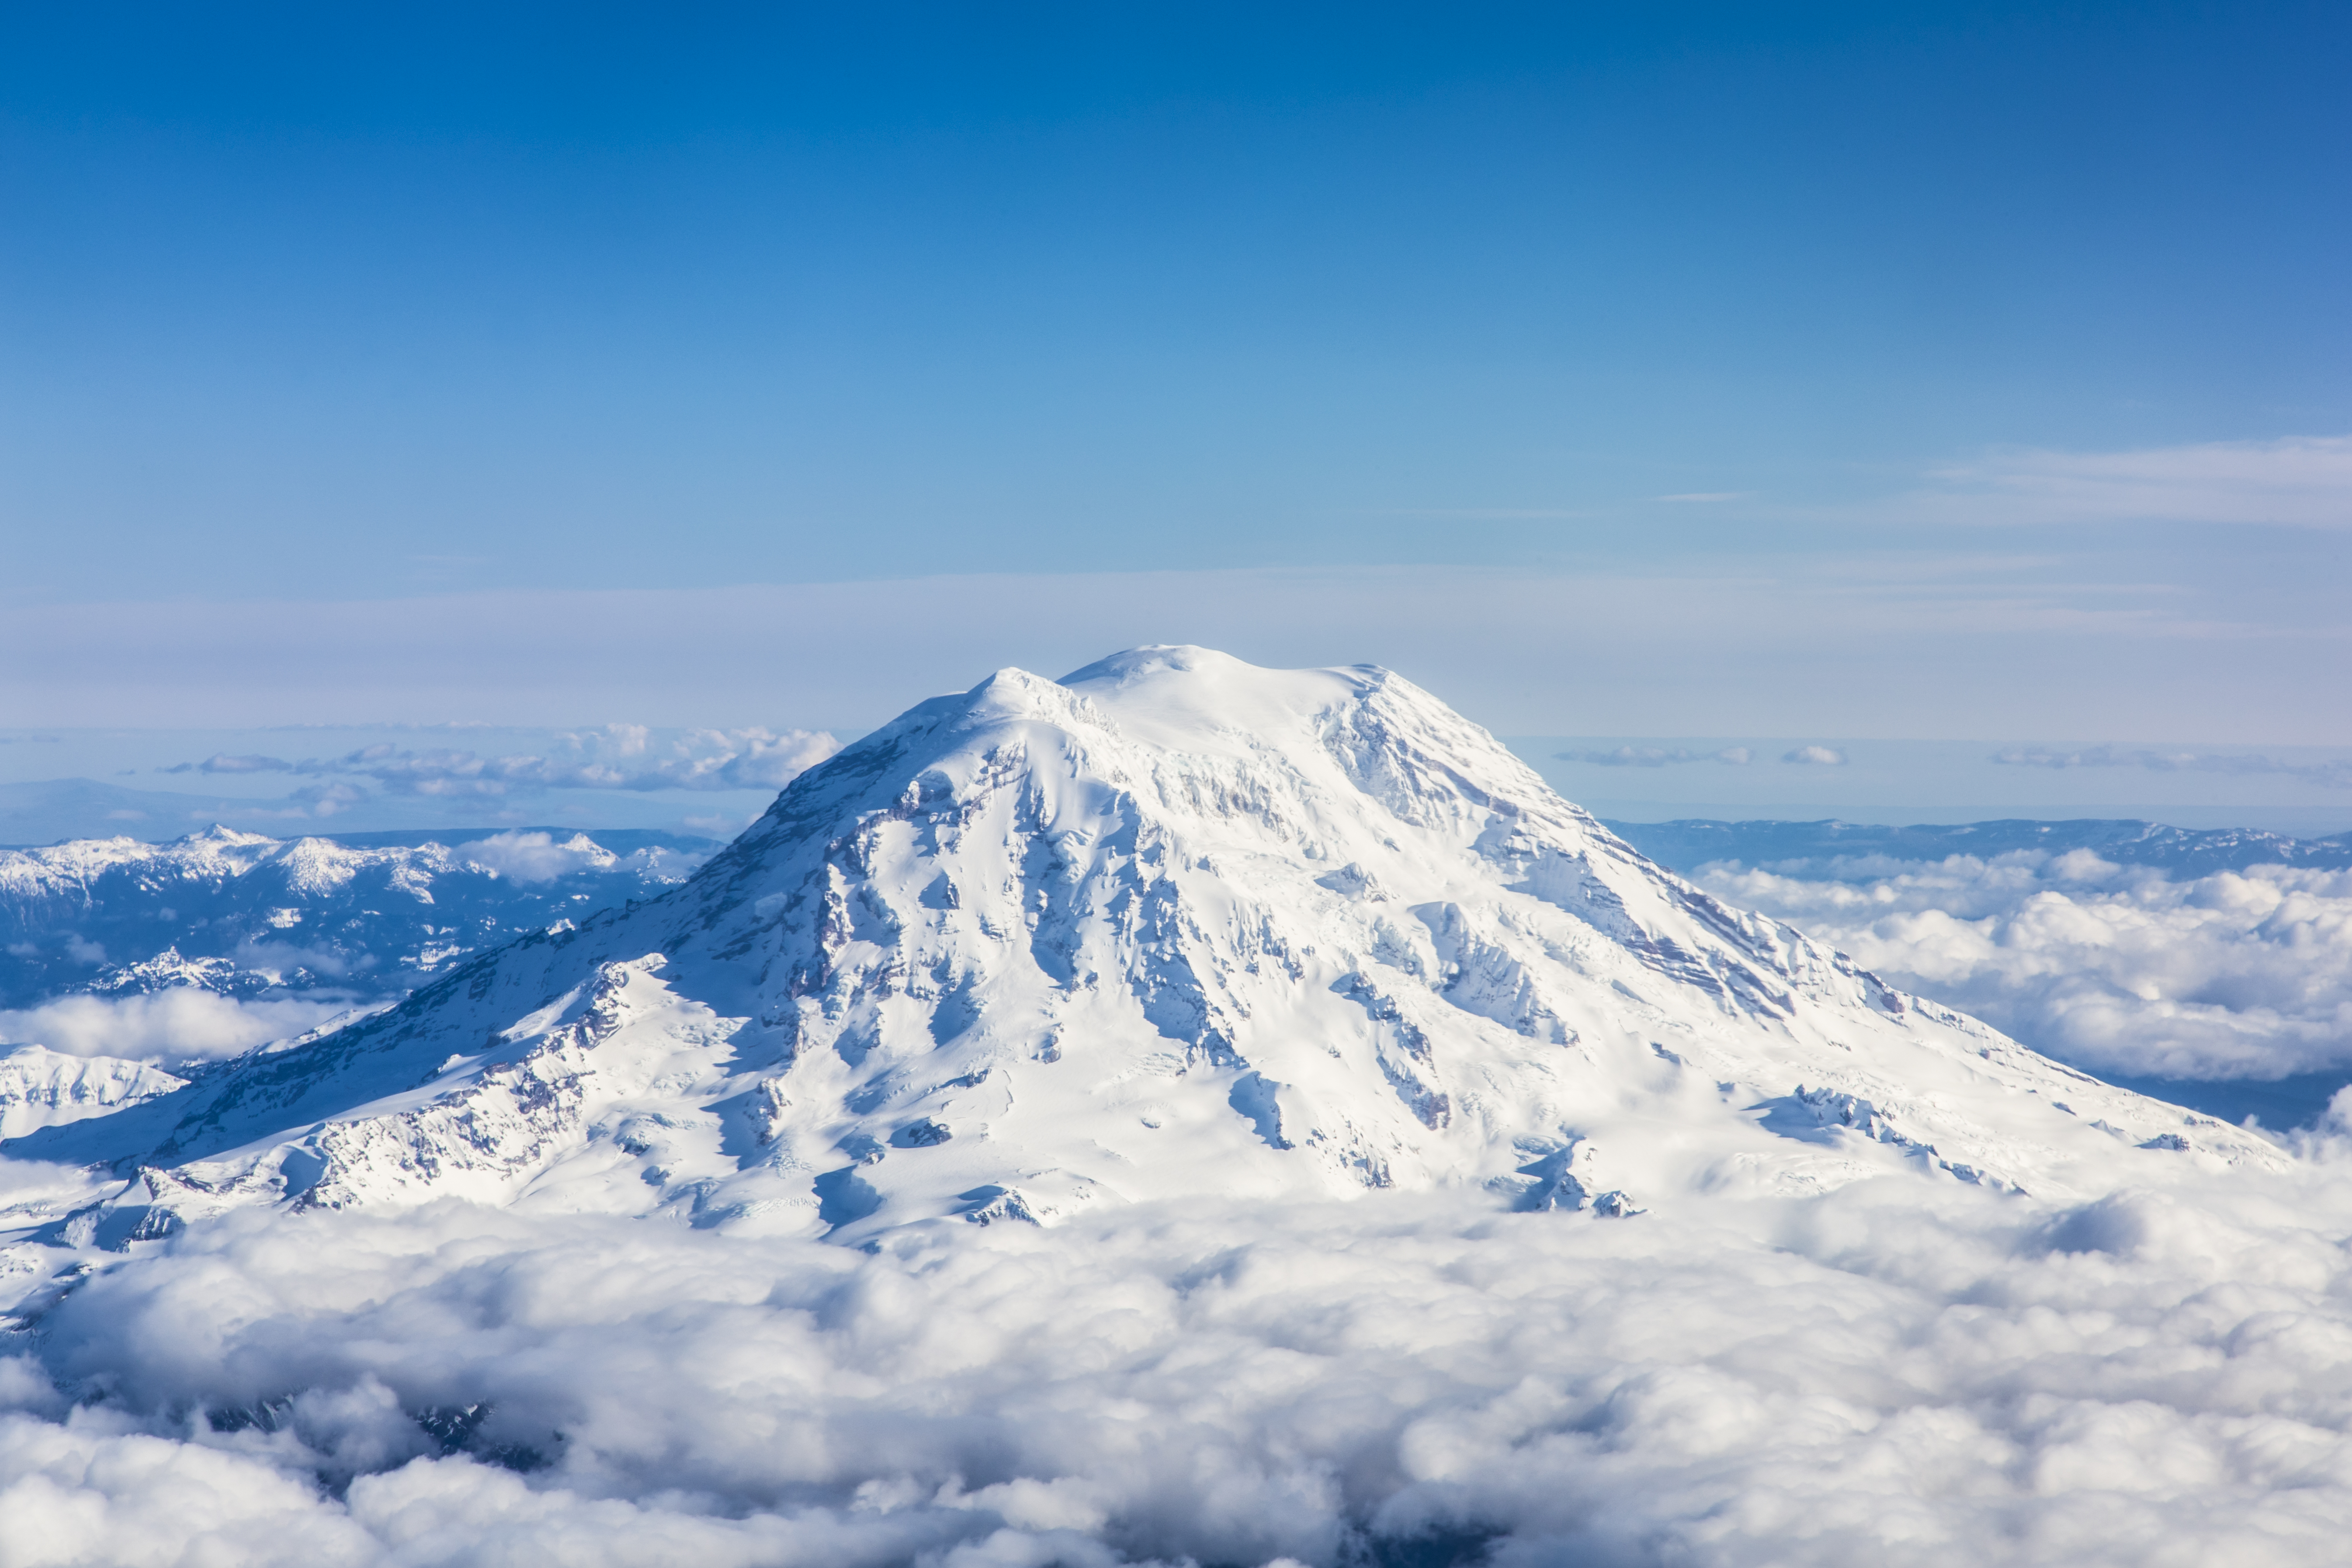 Mount Rainier from an aircraft